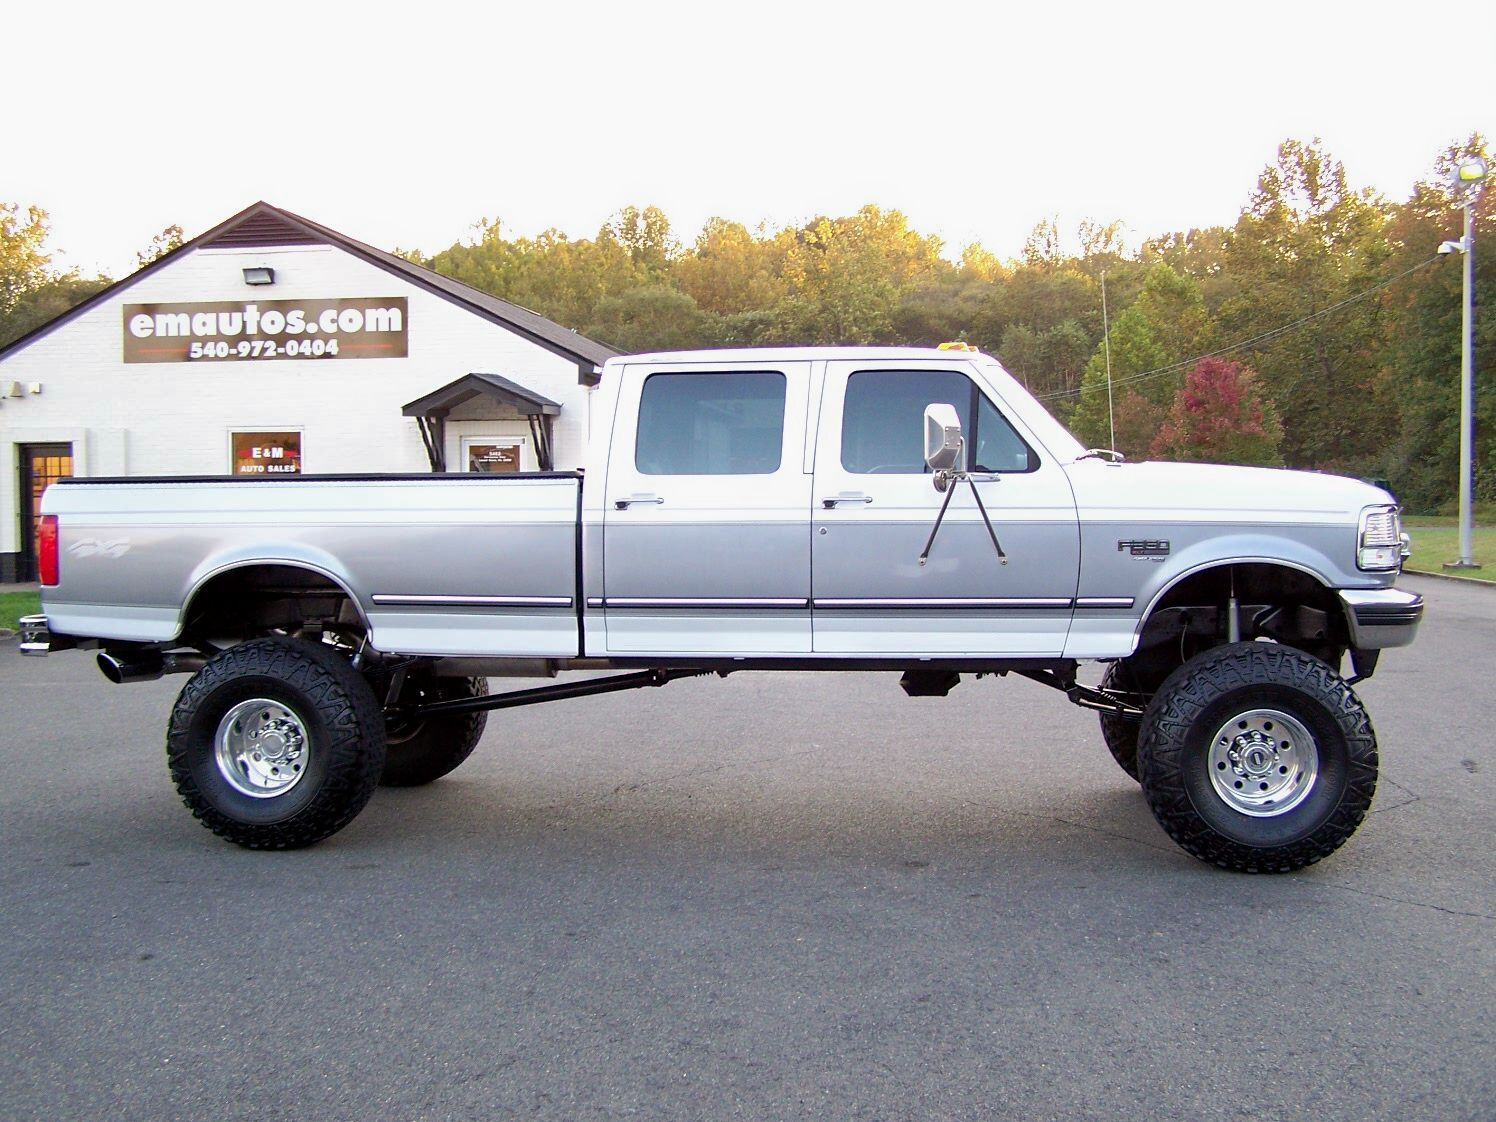 1997 ford f 350 crew cab long bed 4x4 7 3l powerstroke diesel w manual trans. Black Bedroom Furniture Sets. Home Design Ideas